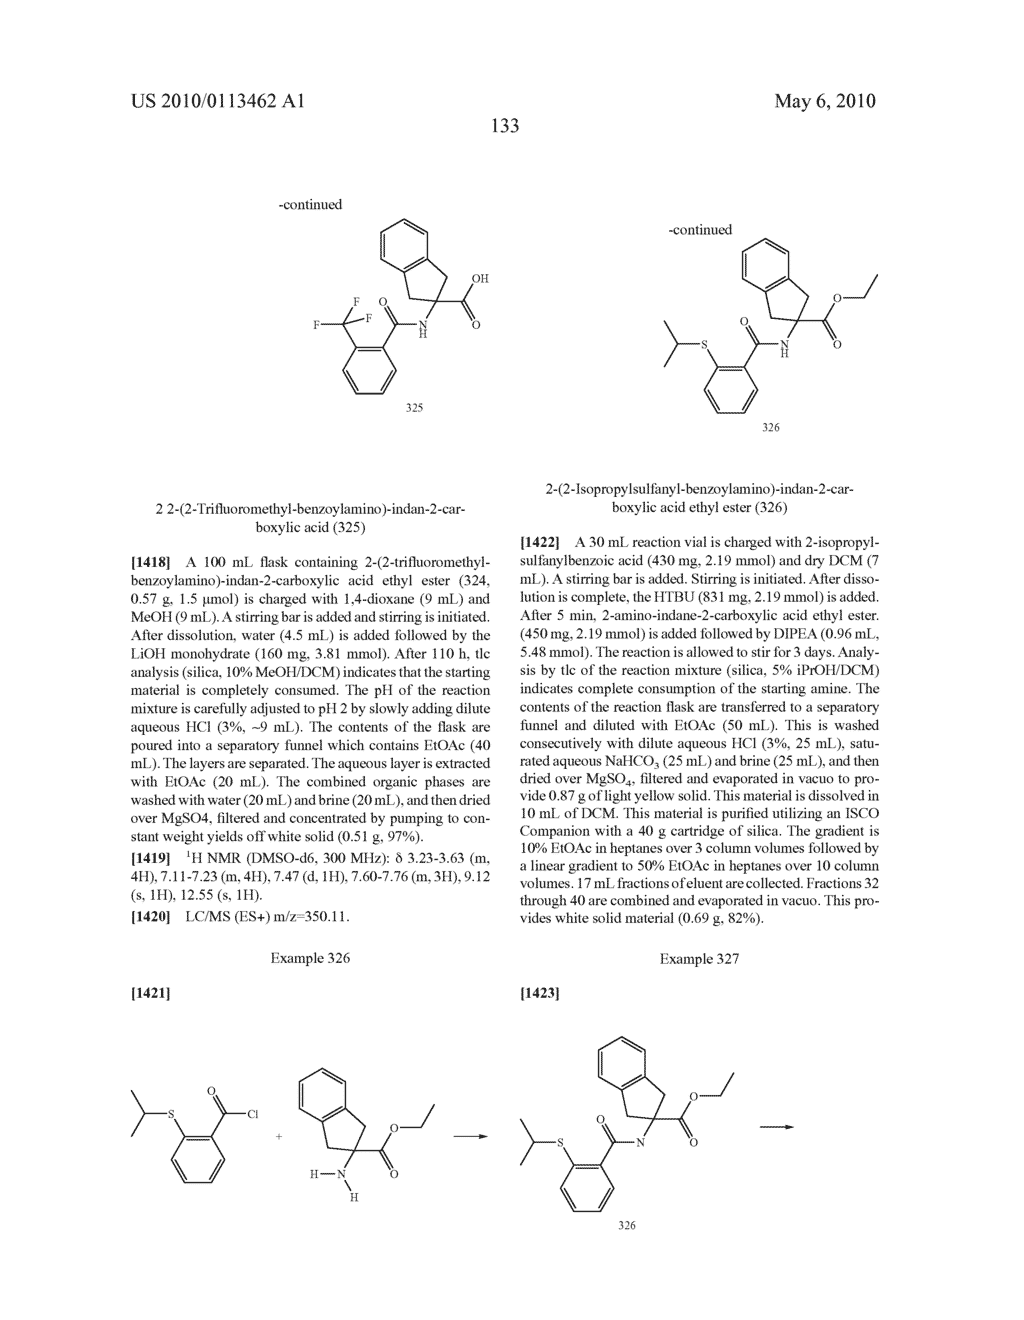 SUBSTITUTED BENZOYLAMINO-INDAN-2-CARBOXYLIC ACIDS AND RELATED COMPOUNDS - diagram, schematic, and image 134